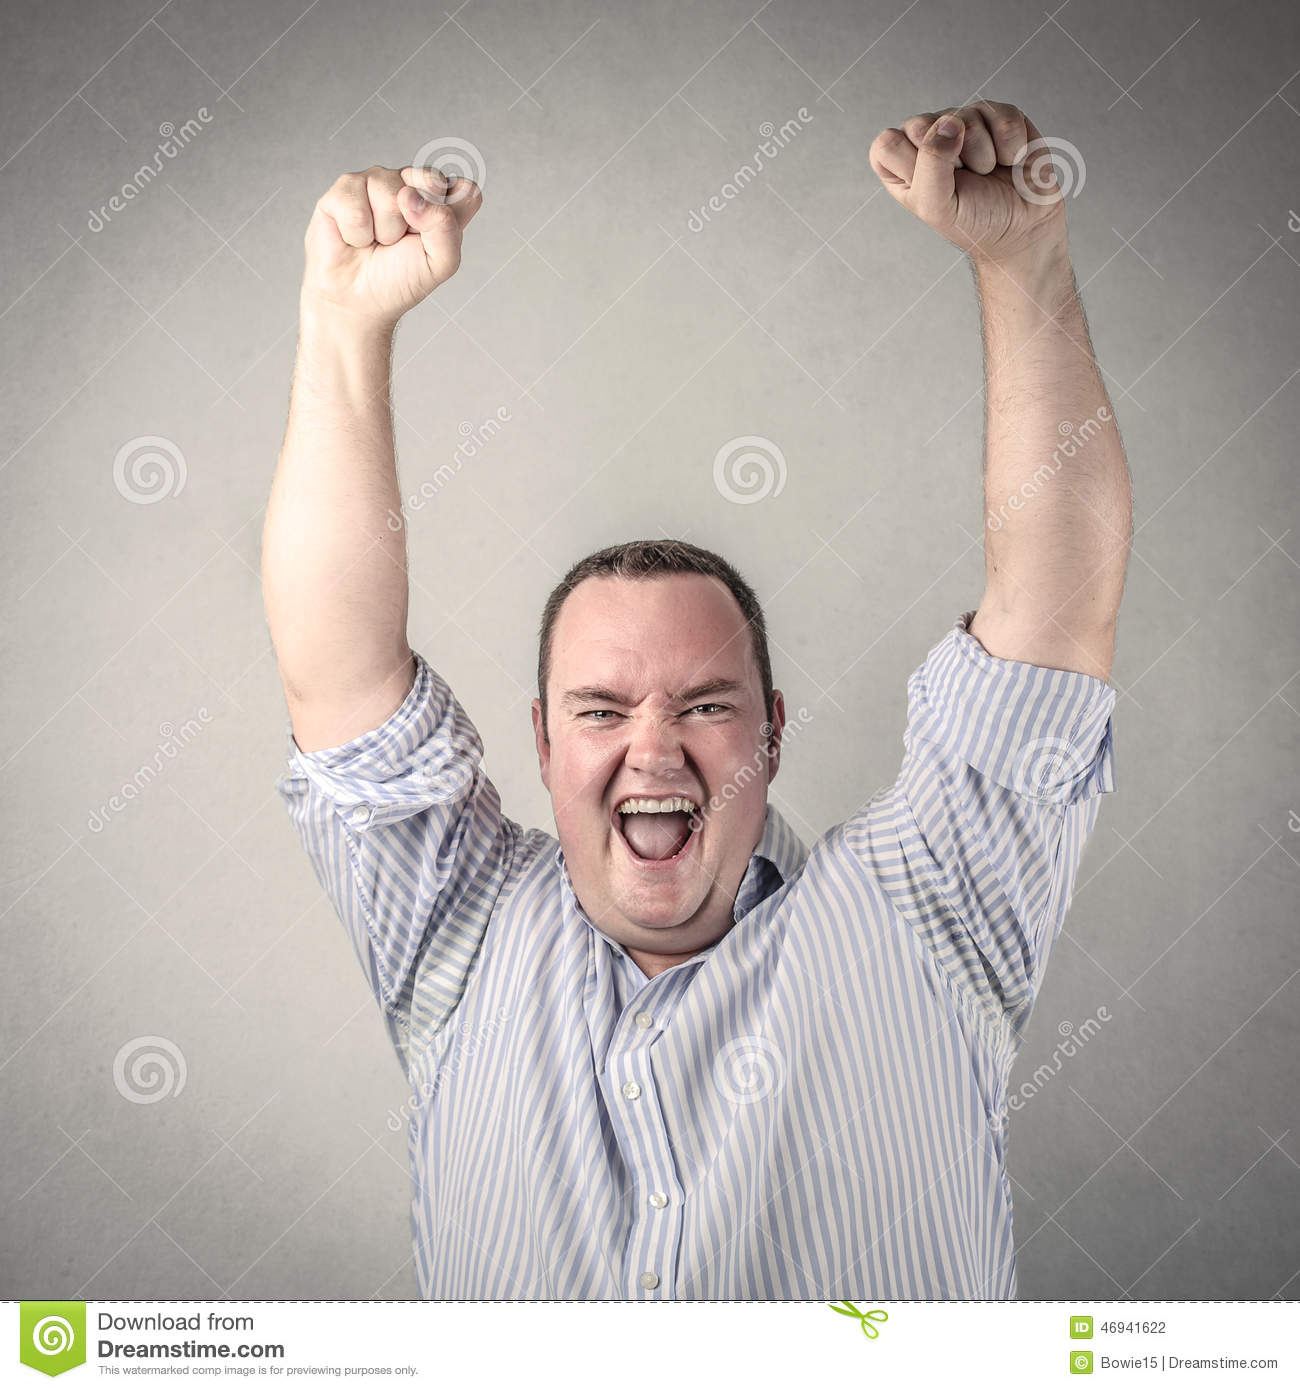 Joyful expression stock photo. Image of winning, concept ...